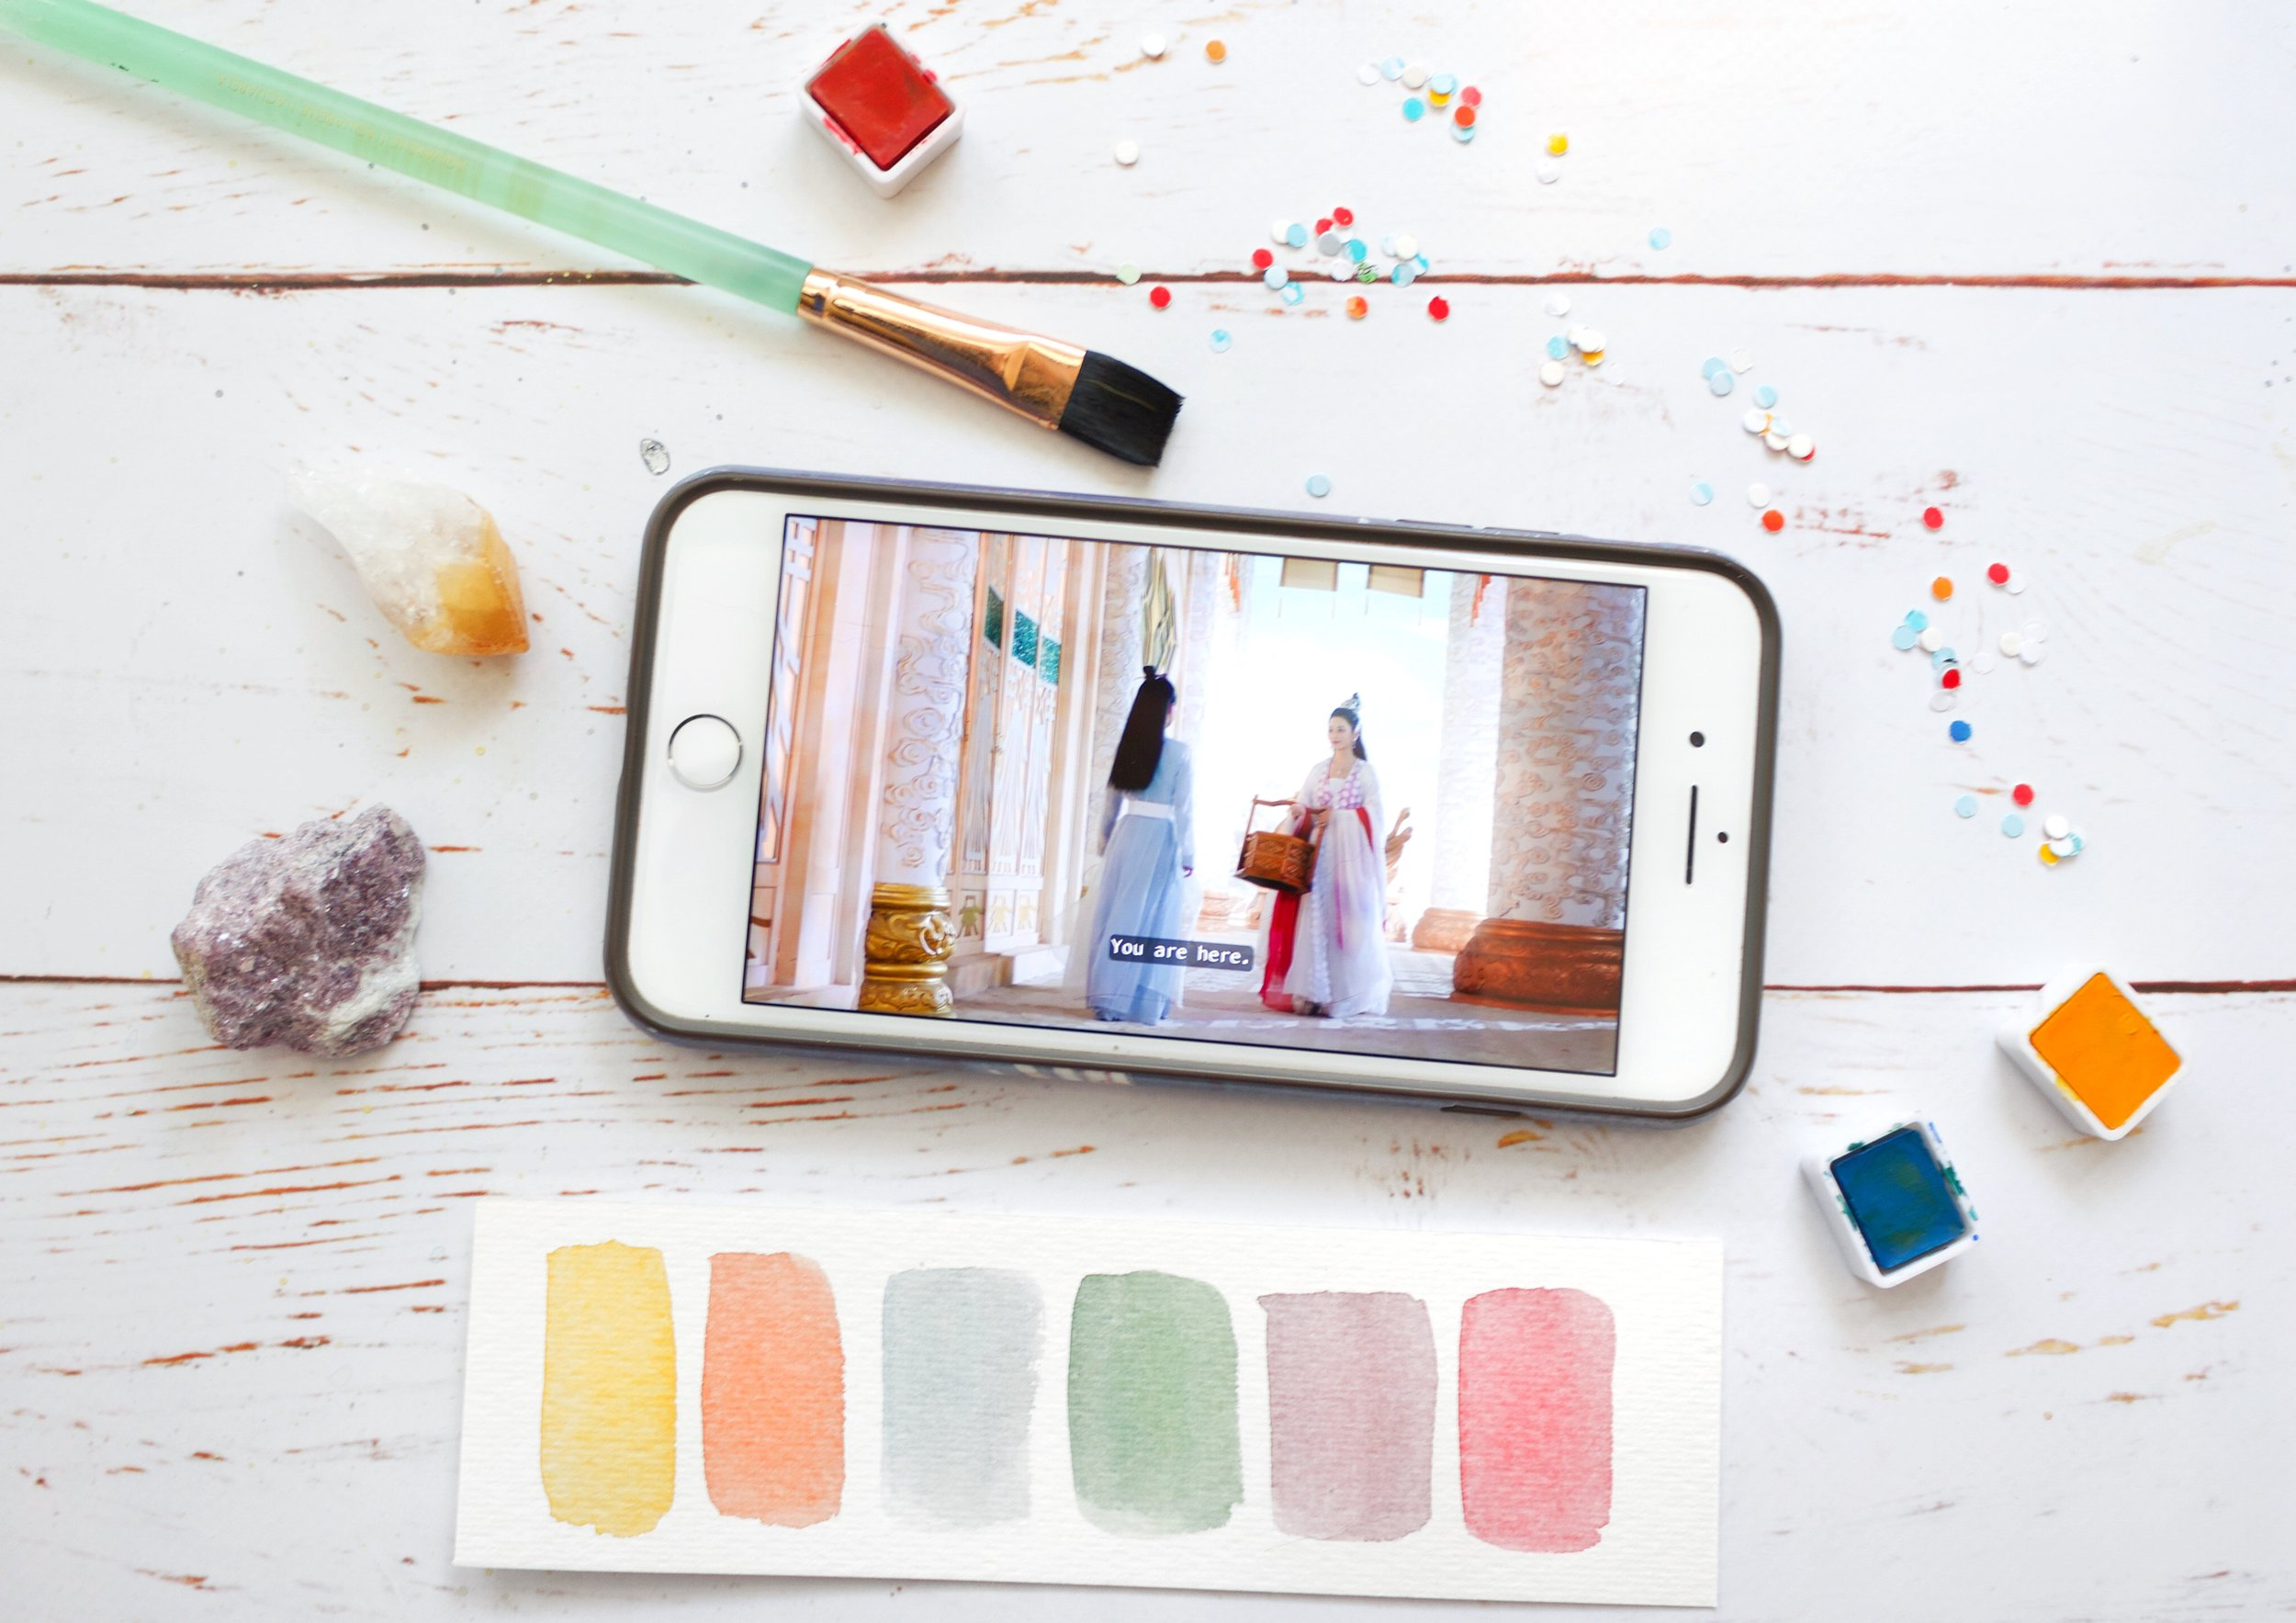 Finding Color Inspiration From Your Everyday Life using phone apps to create color palettes and art by Priscilla George for Experience True Colors art p (23).jpg